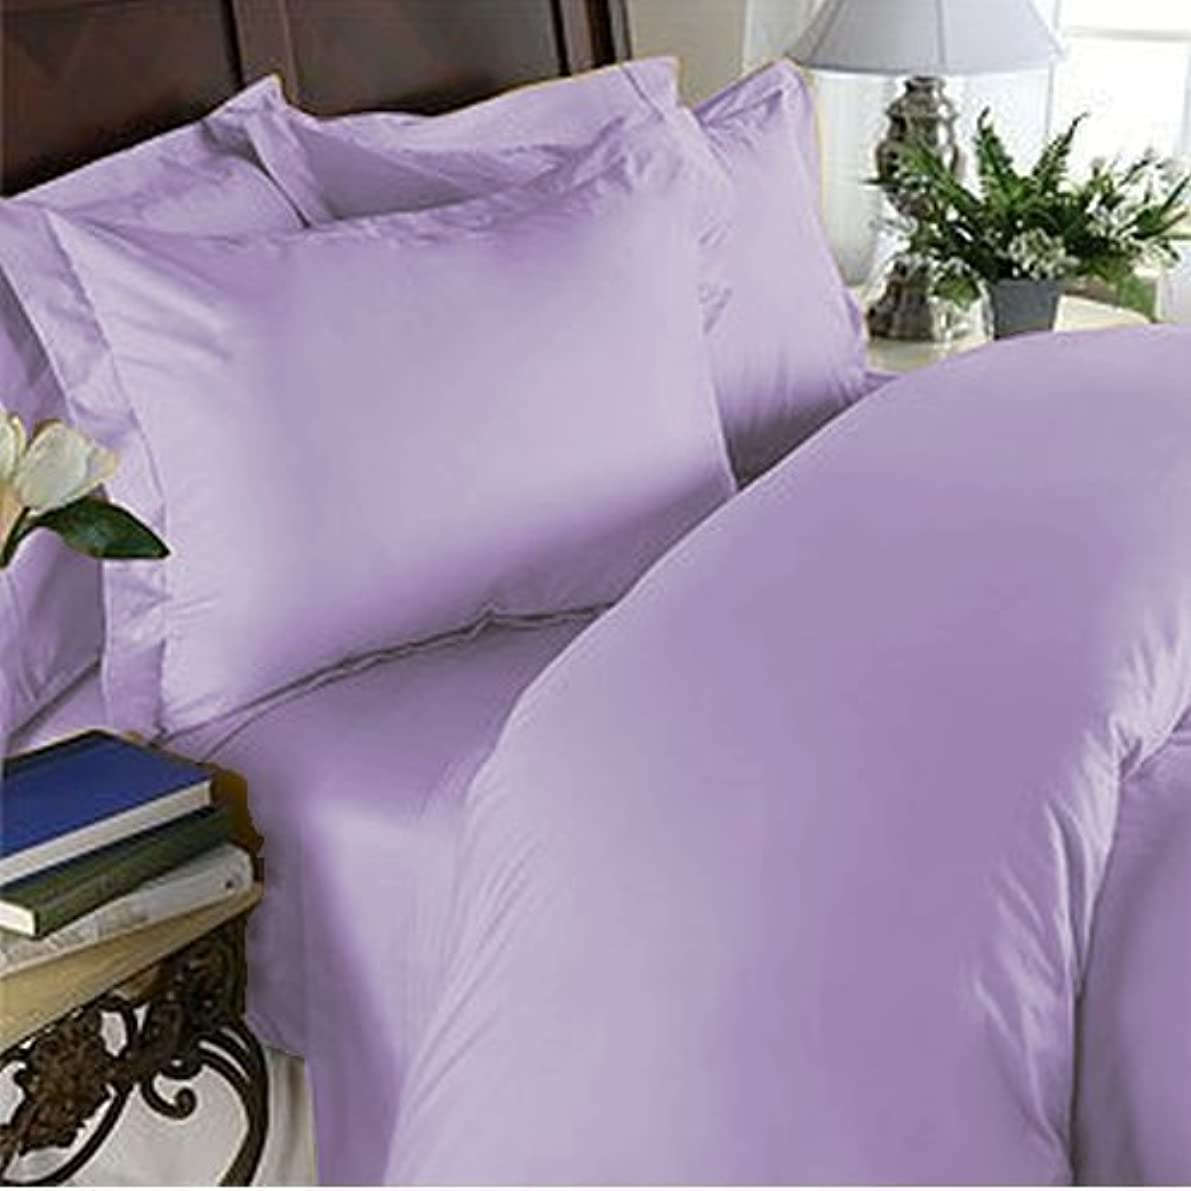 Elegant Comfort 1500 Thread Count Luxurious 100% Manufacturer Guaranteed Ultra Soft 2-Piece Pillowcase, Wrinkle & Fade Resistant, King Size - Lilac